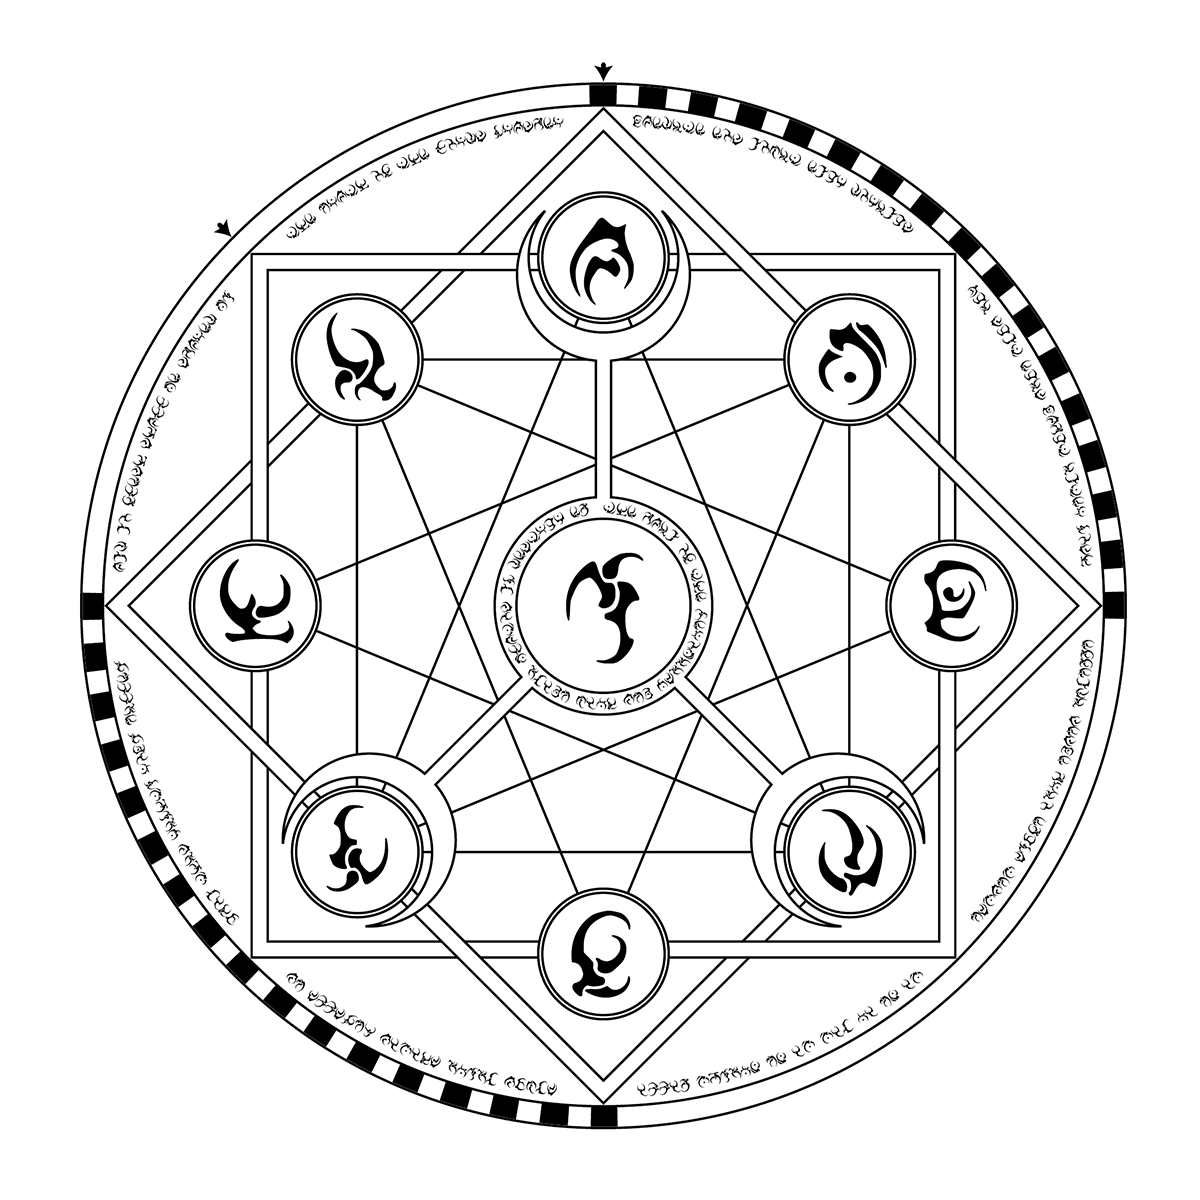 Propnomicon Magic Circle